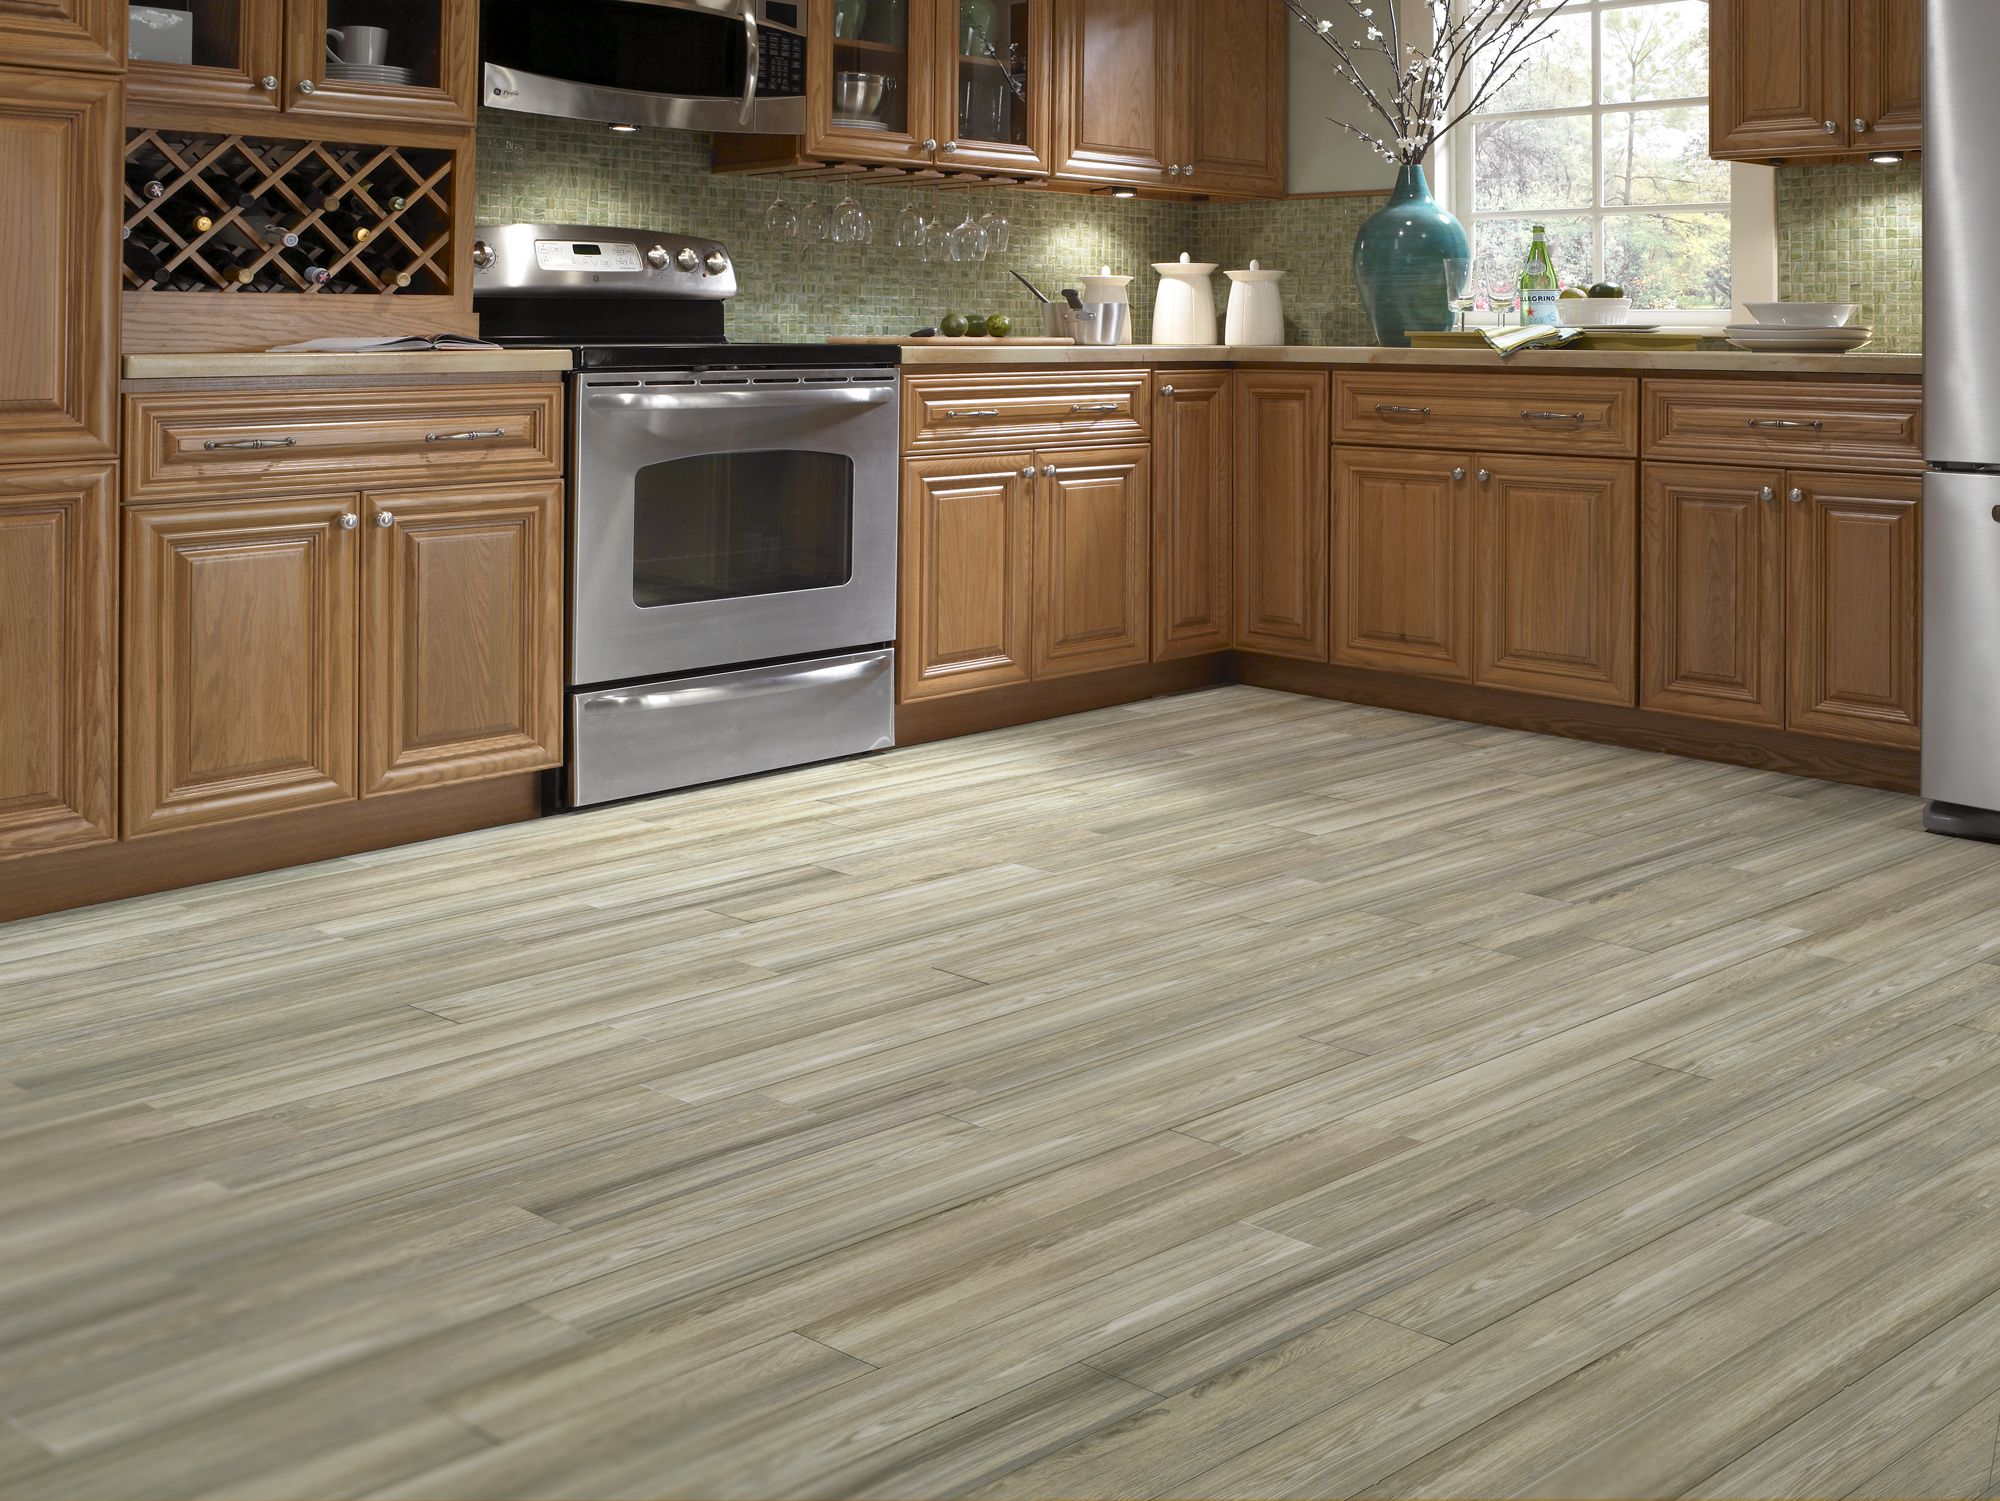 woodlook tile is gorgeous u0026 it combines all the beauty